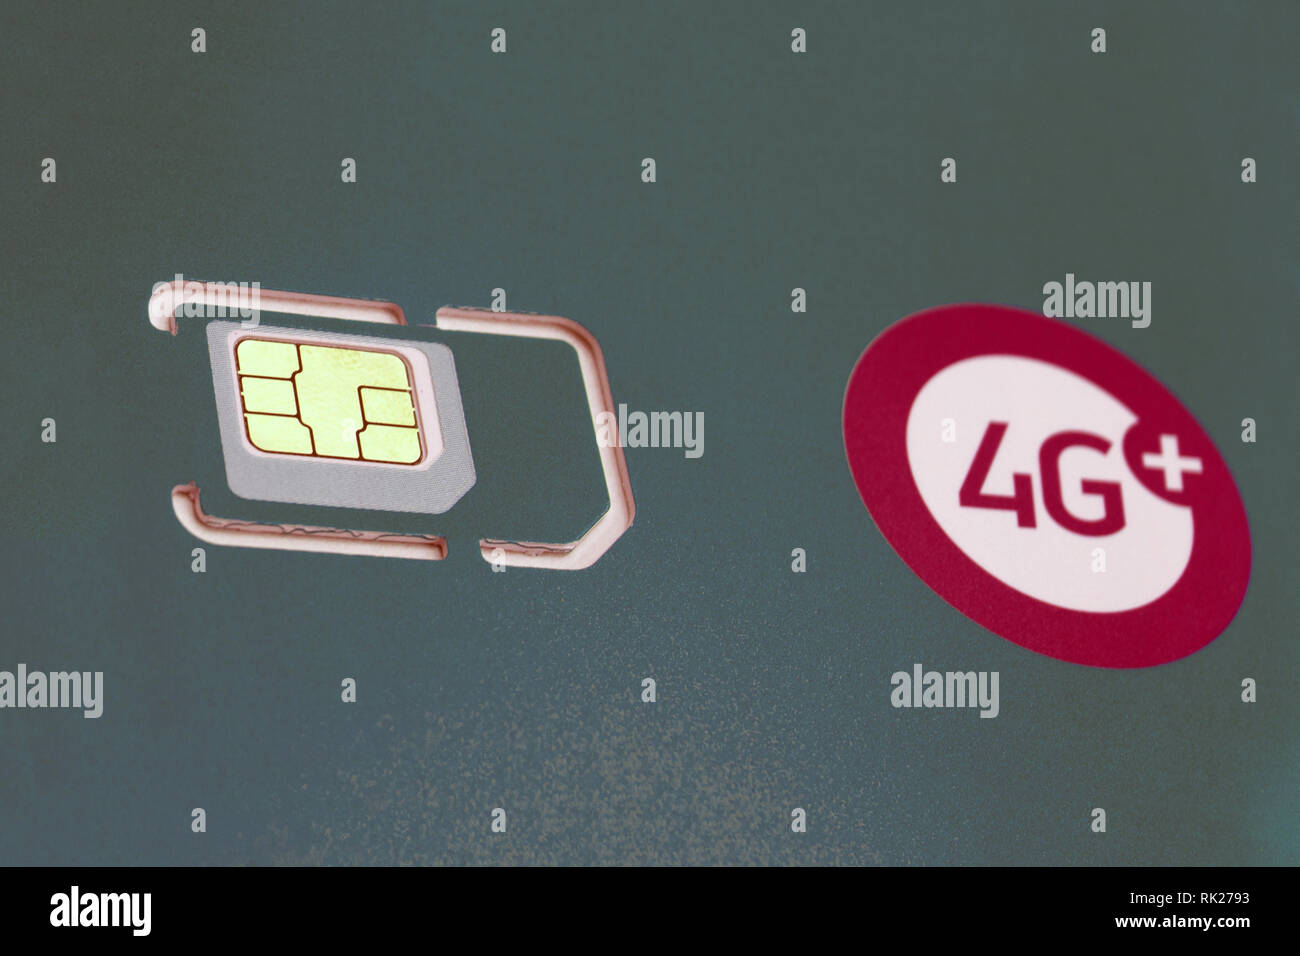 4g network concept illustrated by pictures on background . - Stock Image